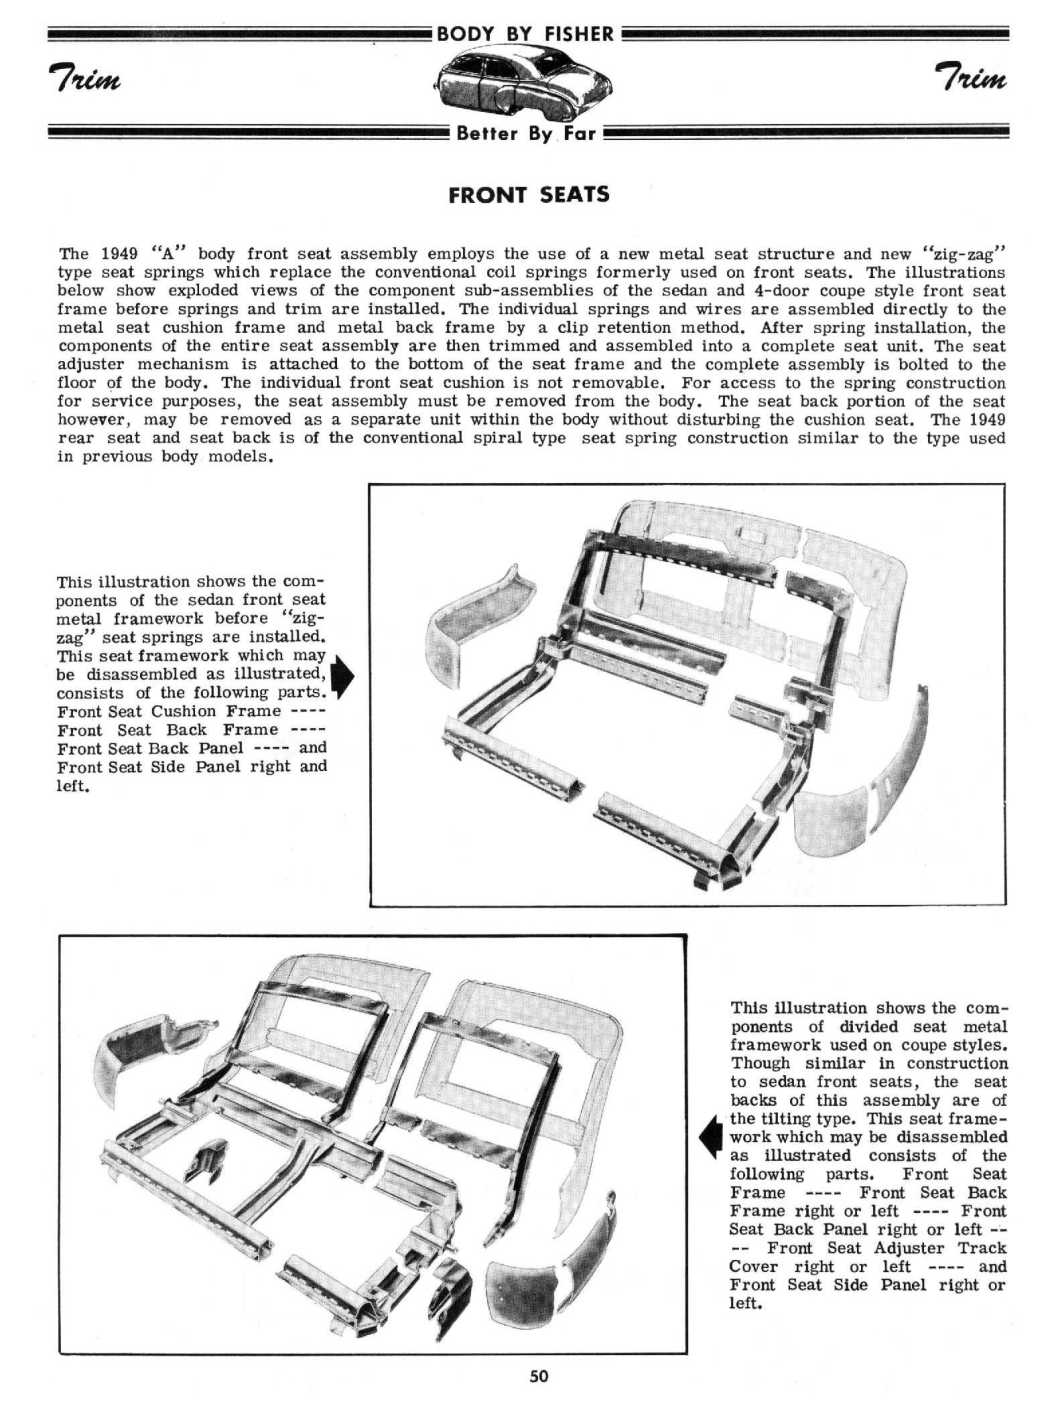 1949 FISHER Body & Construction Manual